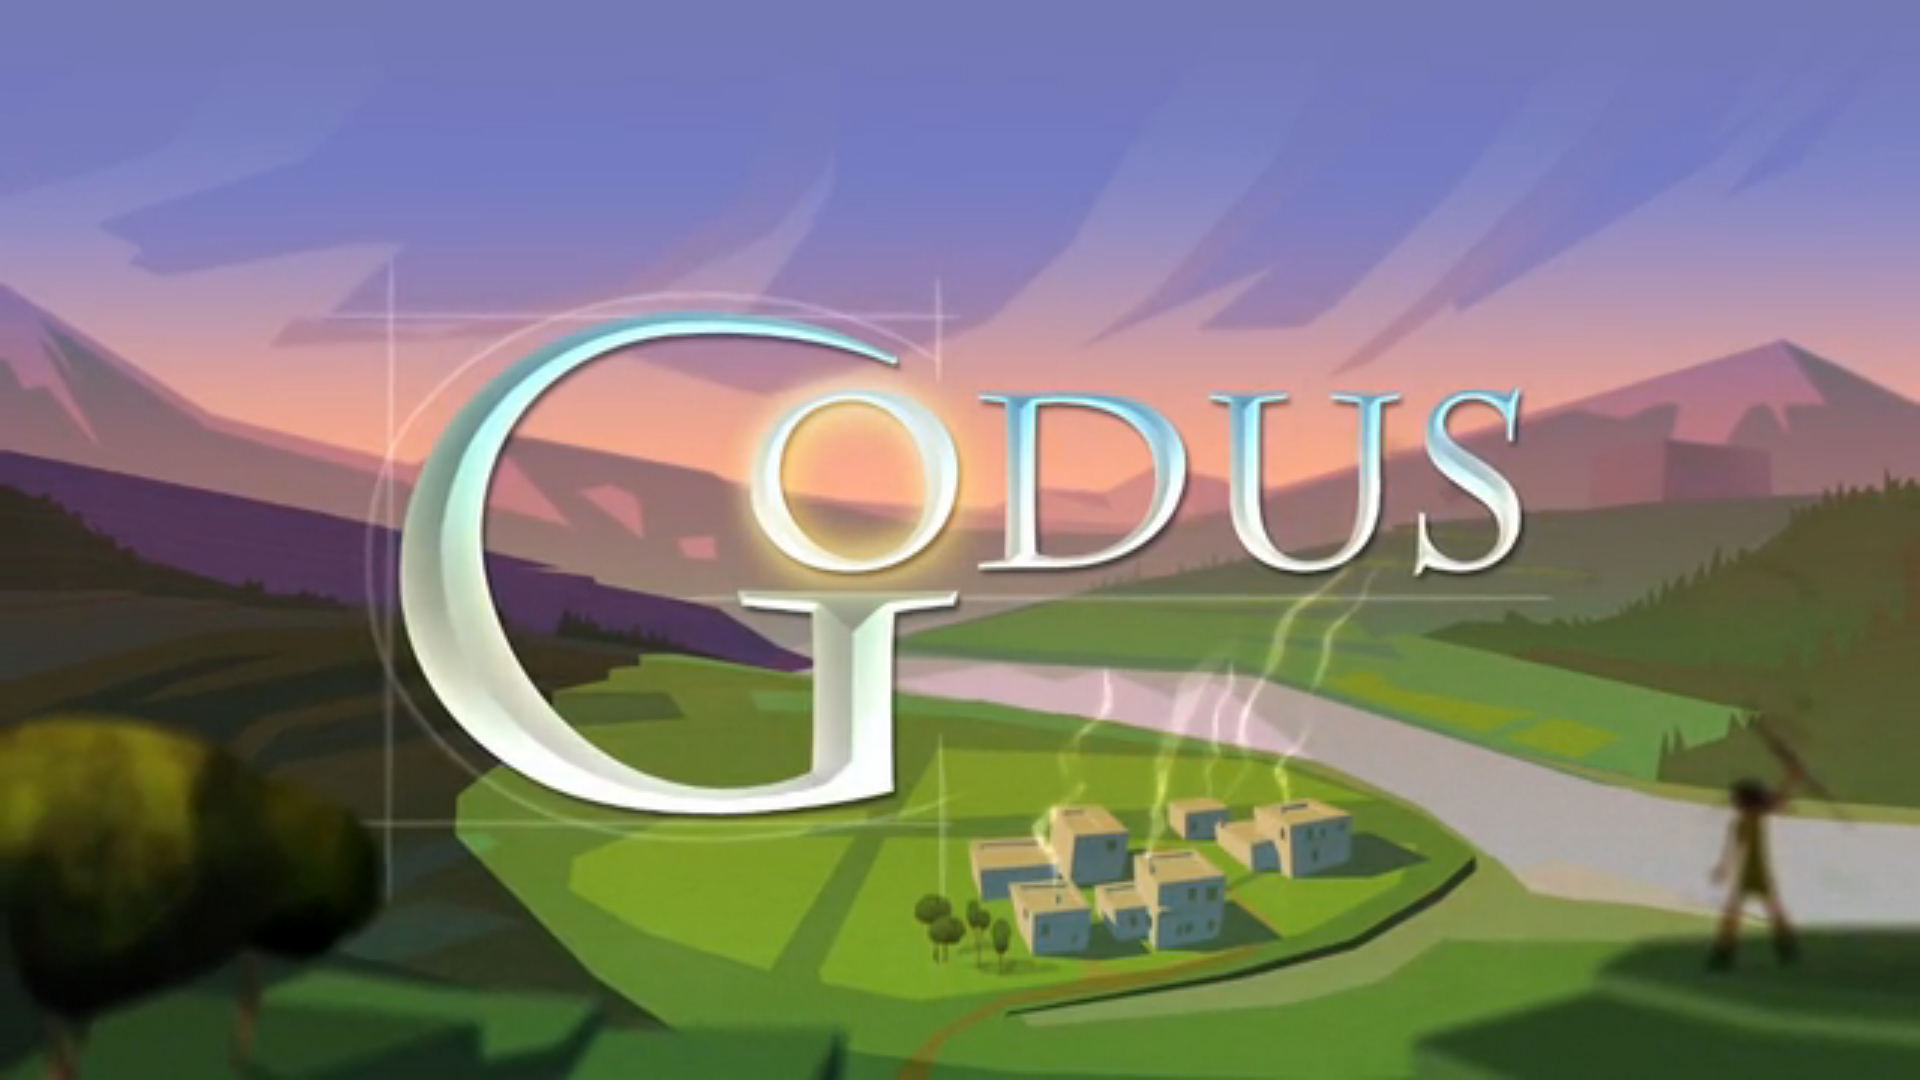 Godus - forever remains on early access...